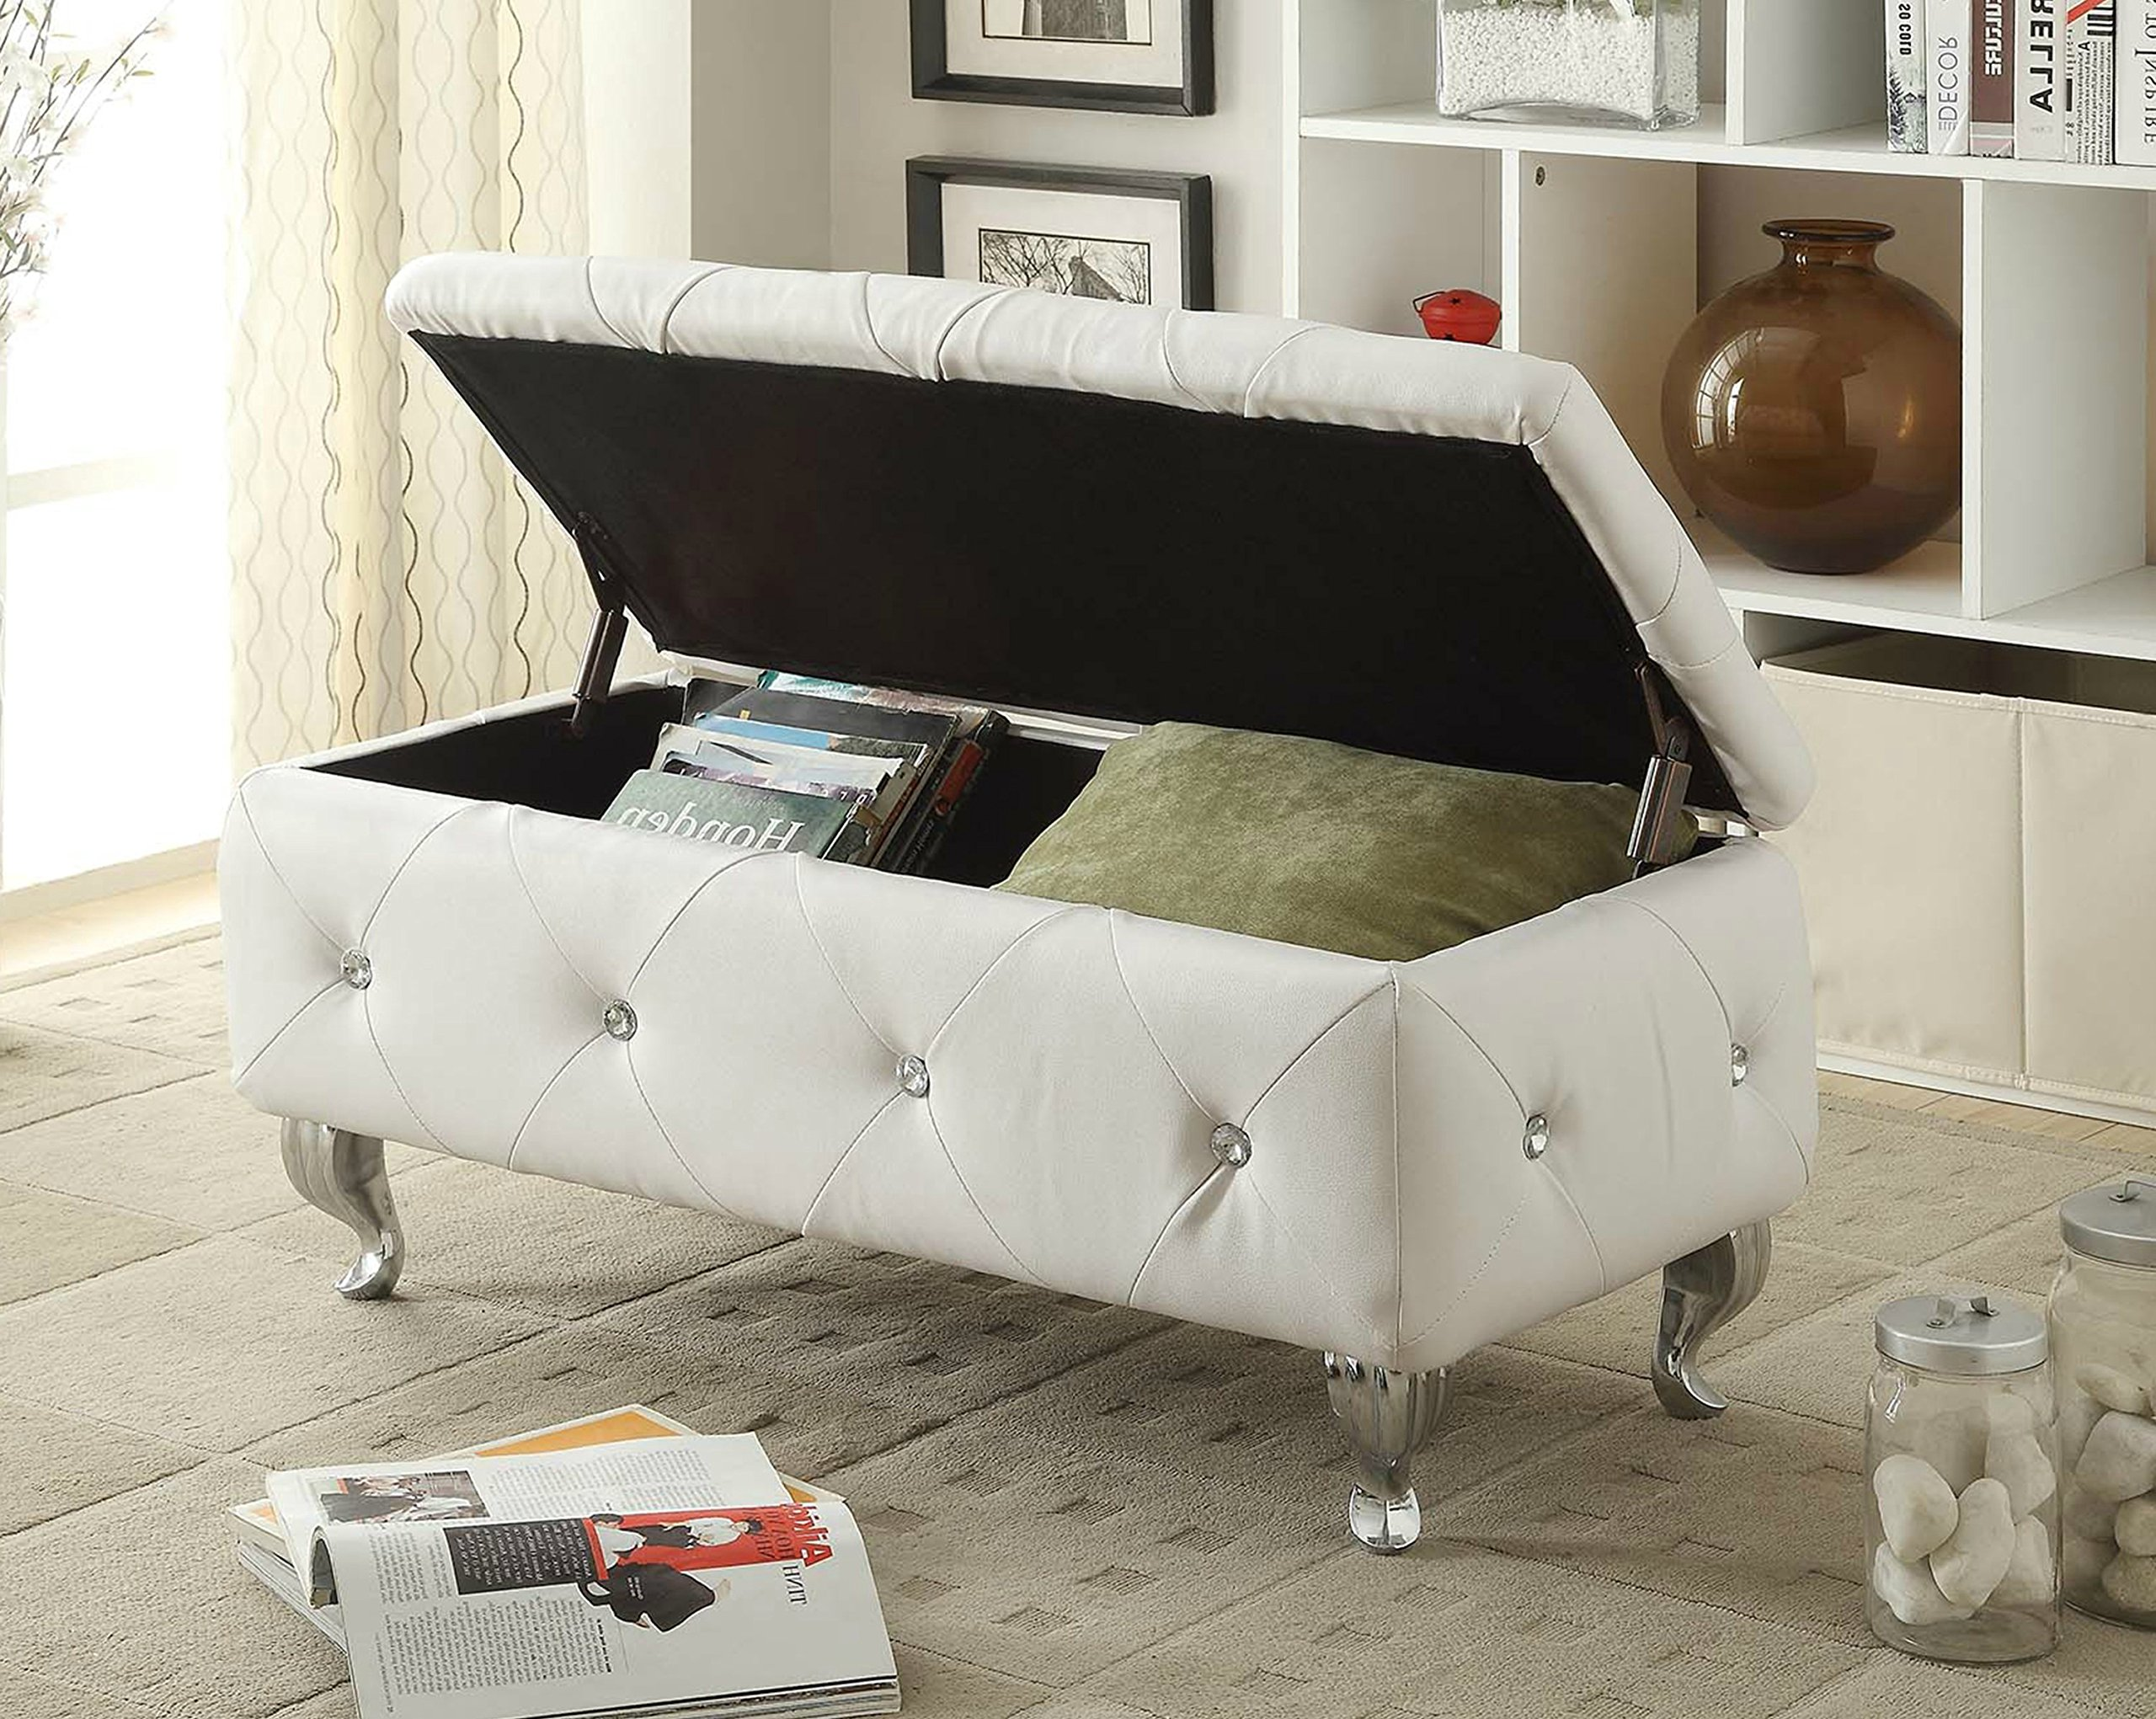 Storage Ottoman Bench Entryway Upholstered Faux Leather Tufted (White)